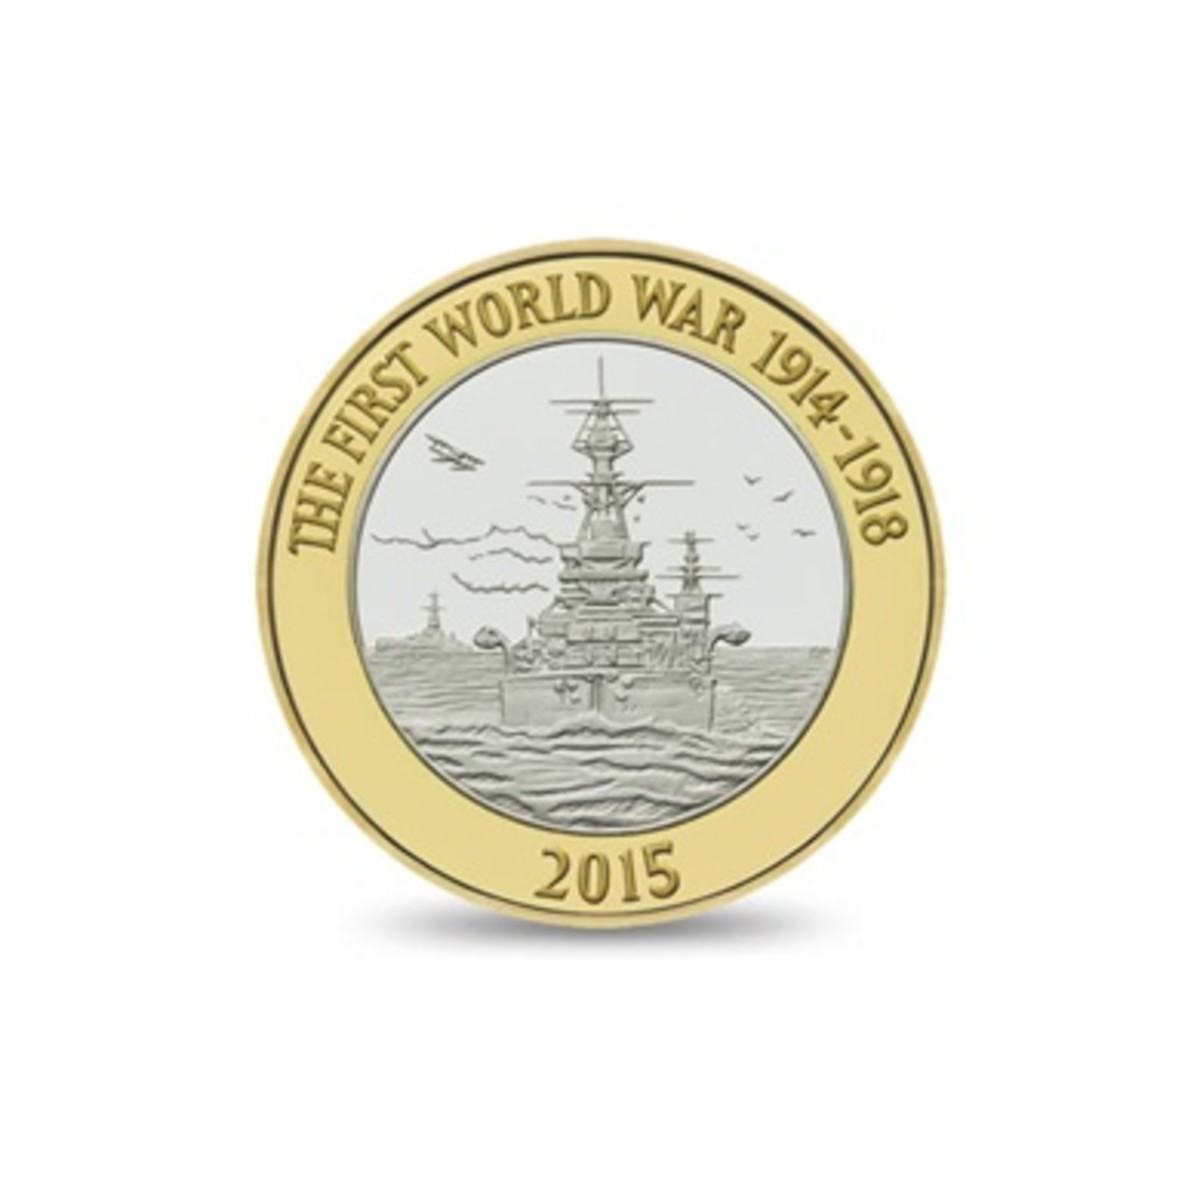 The Royal Navy 2015 £2 Coin